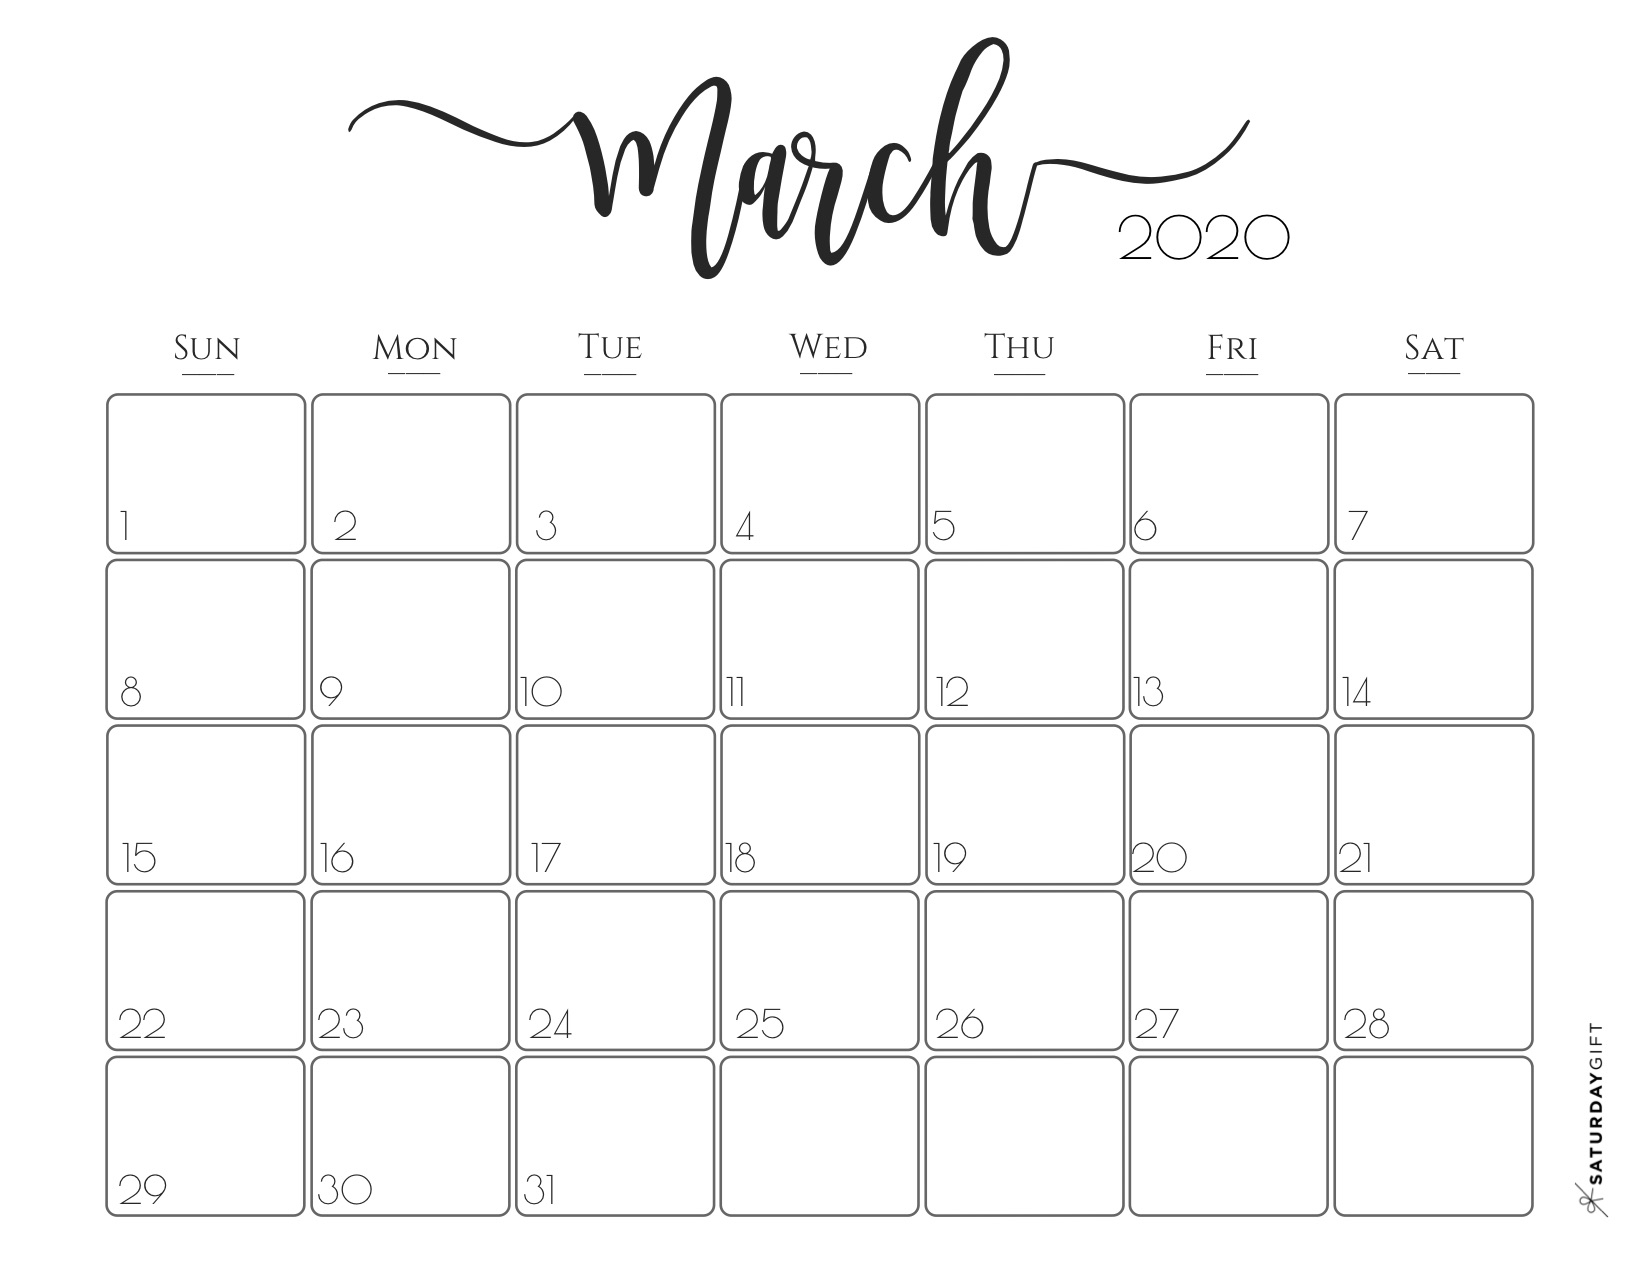 30 March 2020 Calendars You Can Download And Print